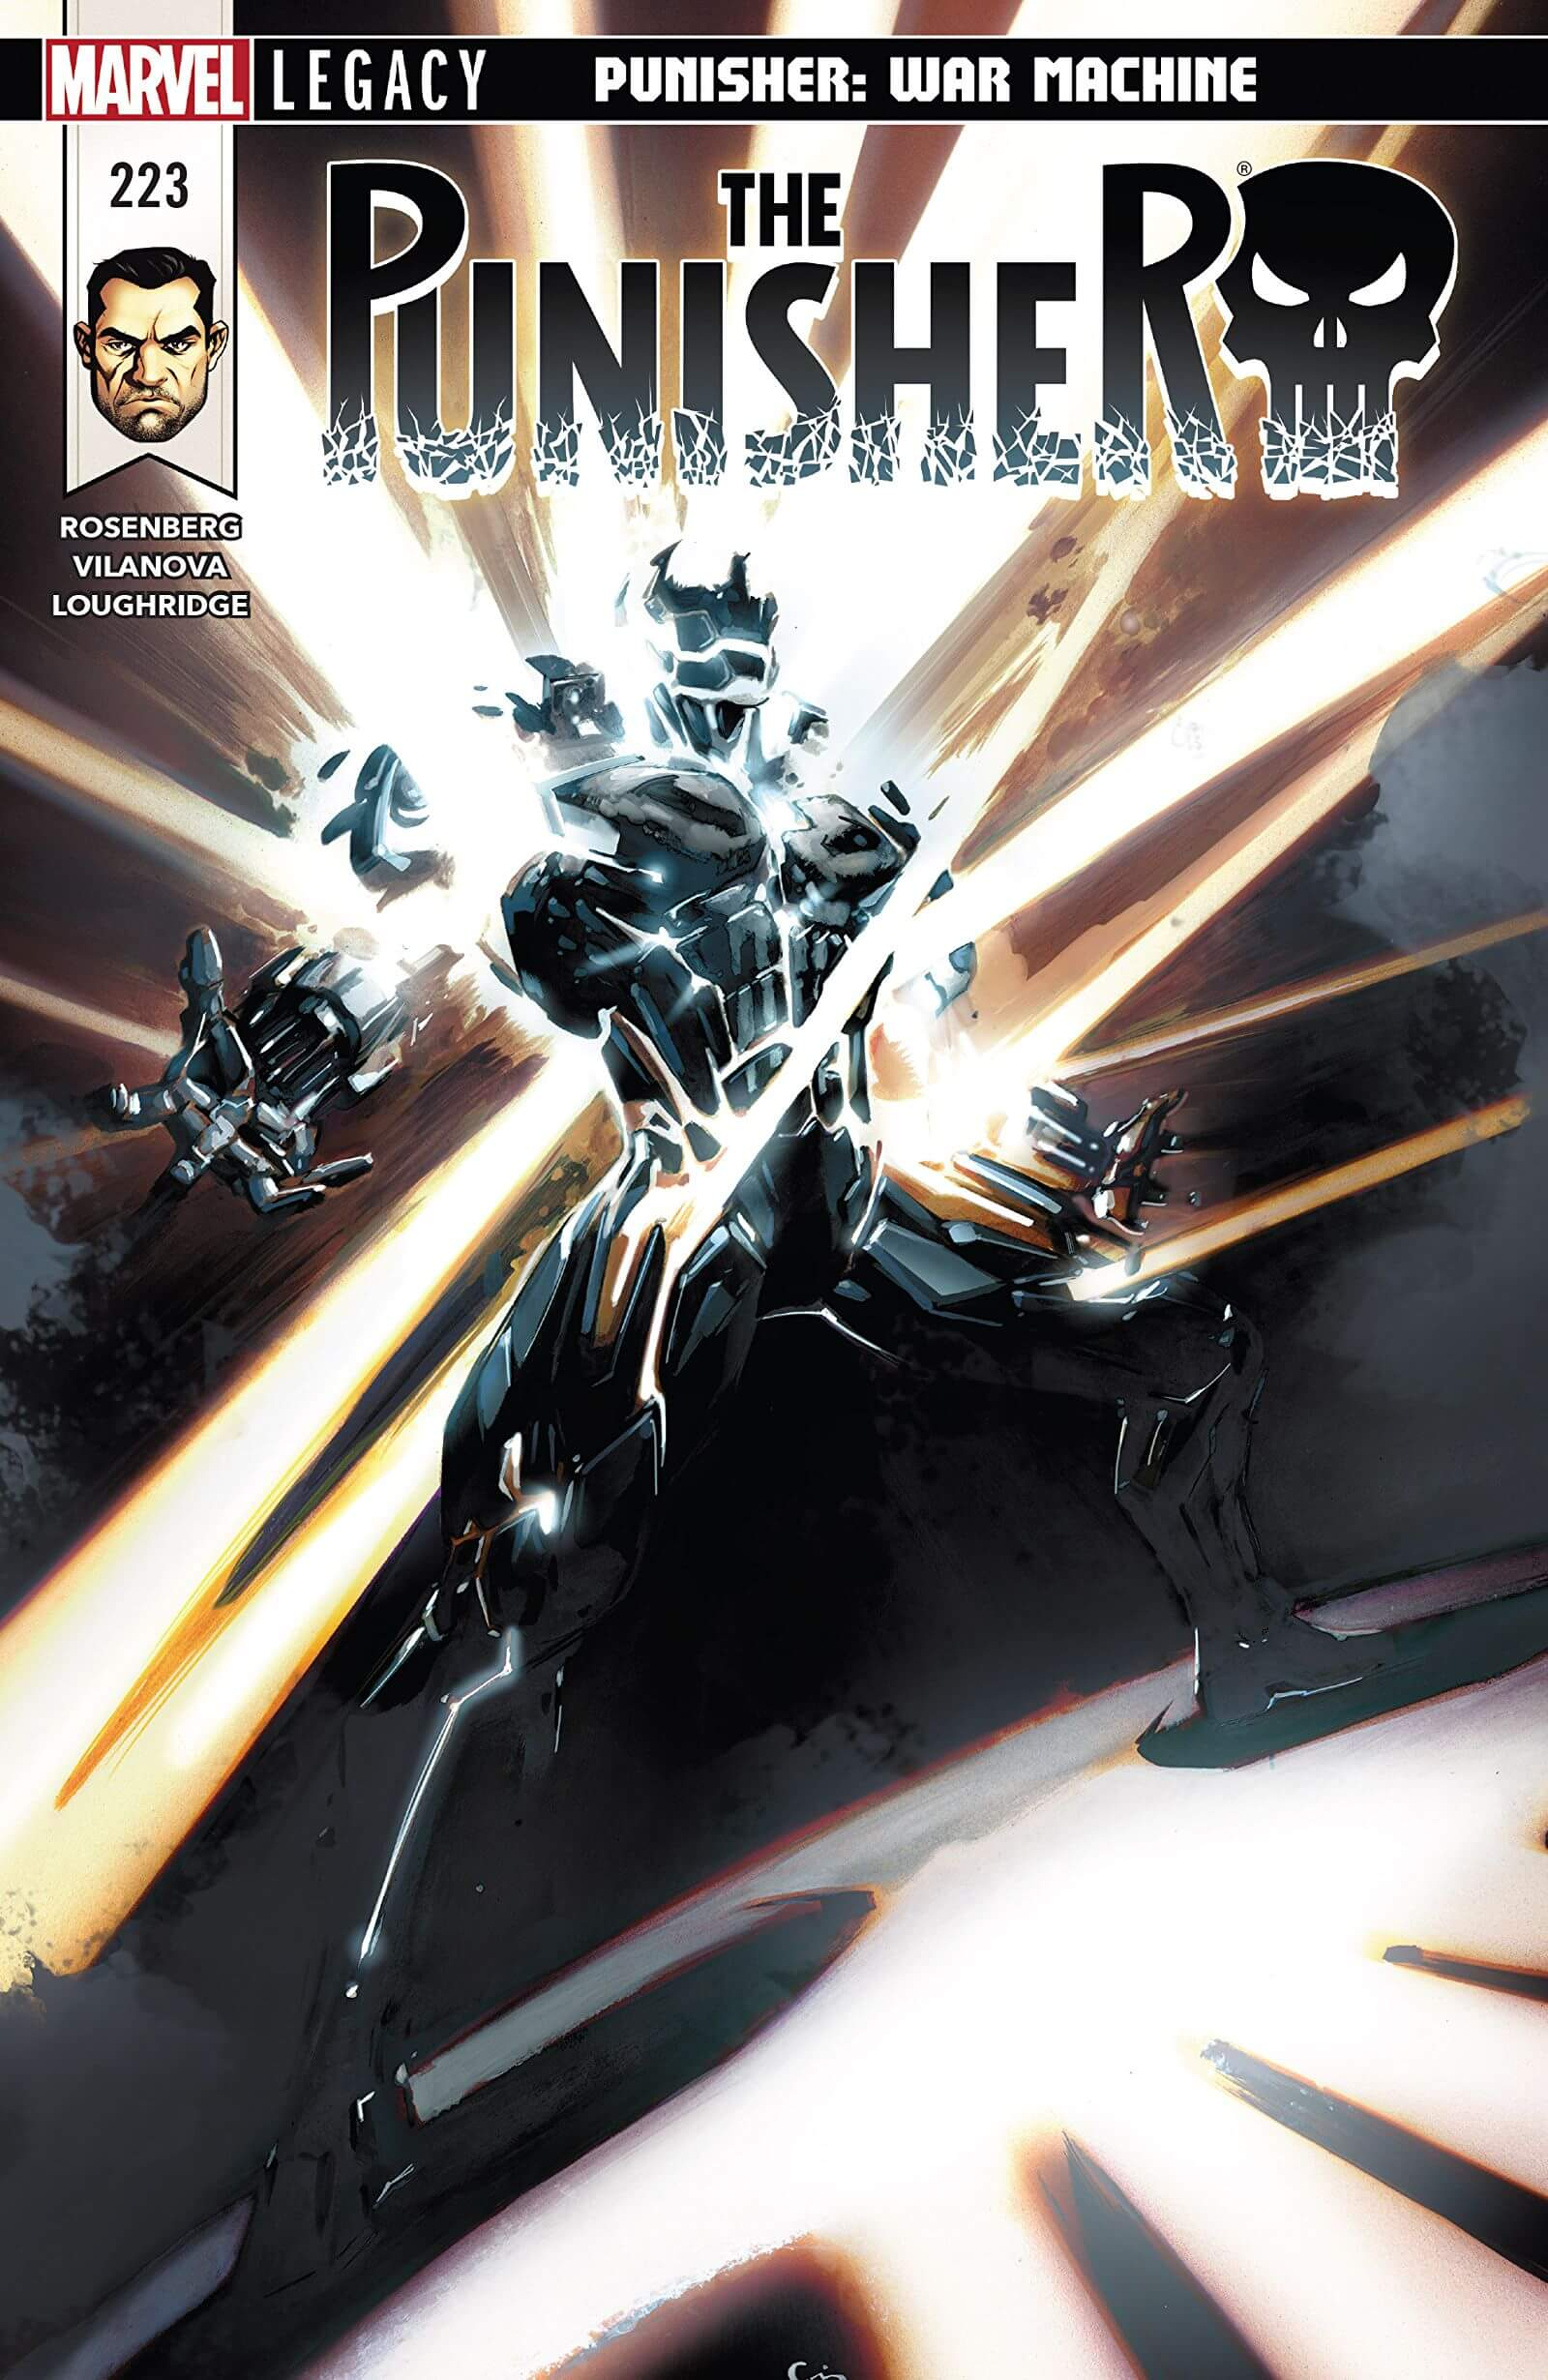 The Punisher Vol 1 #223